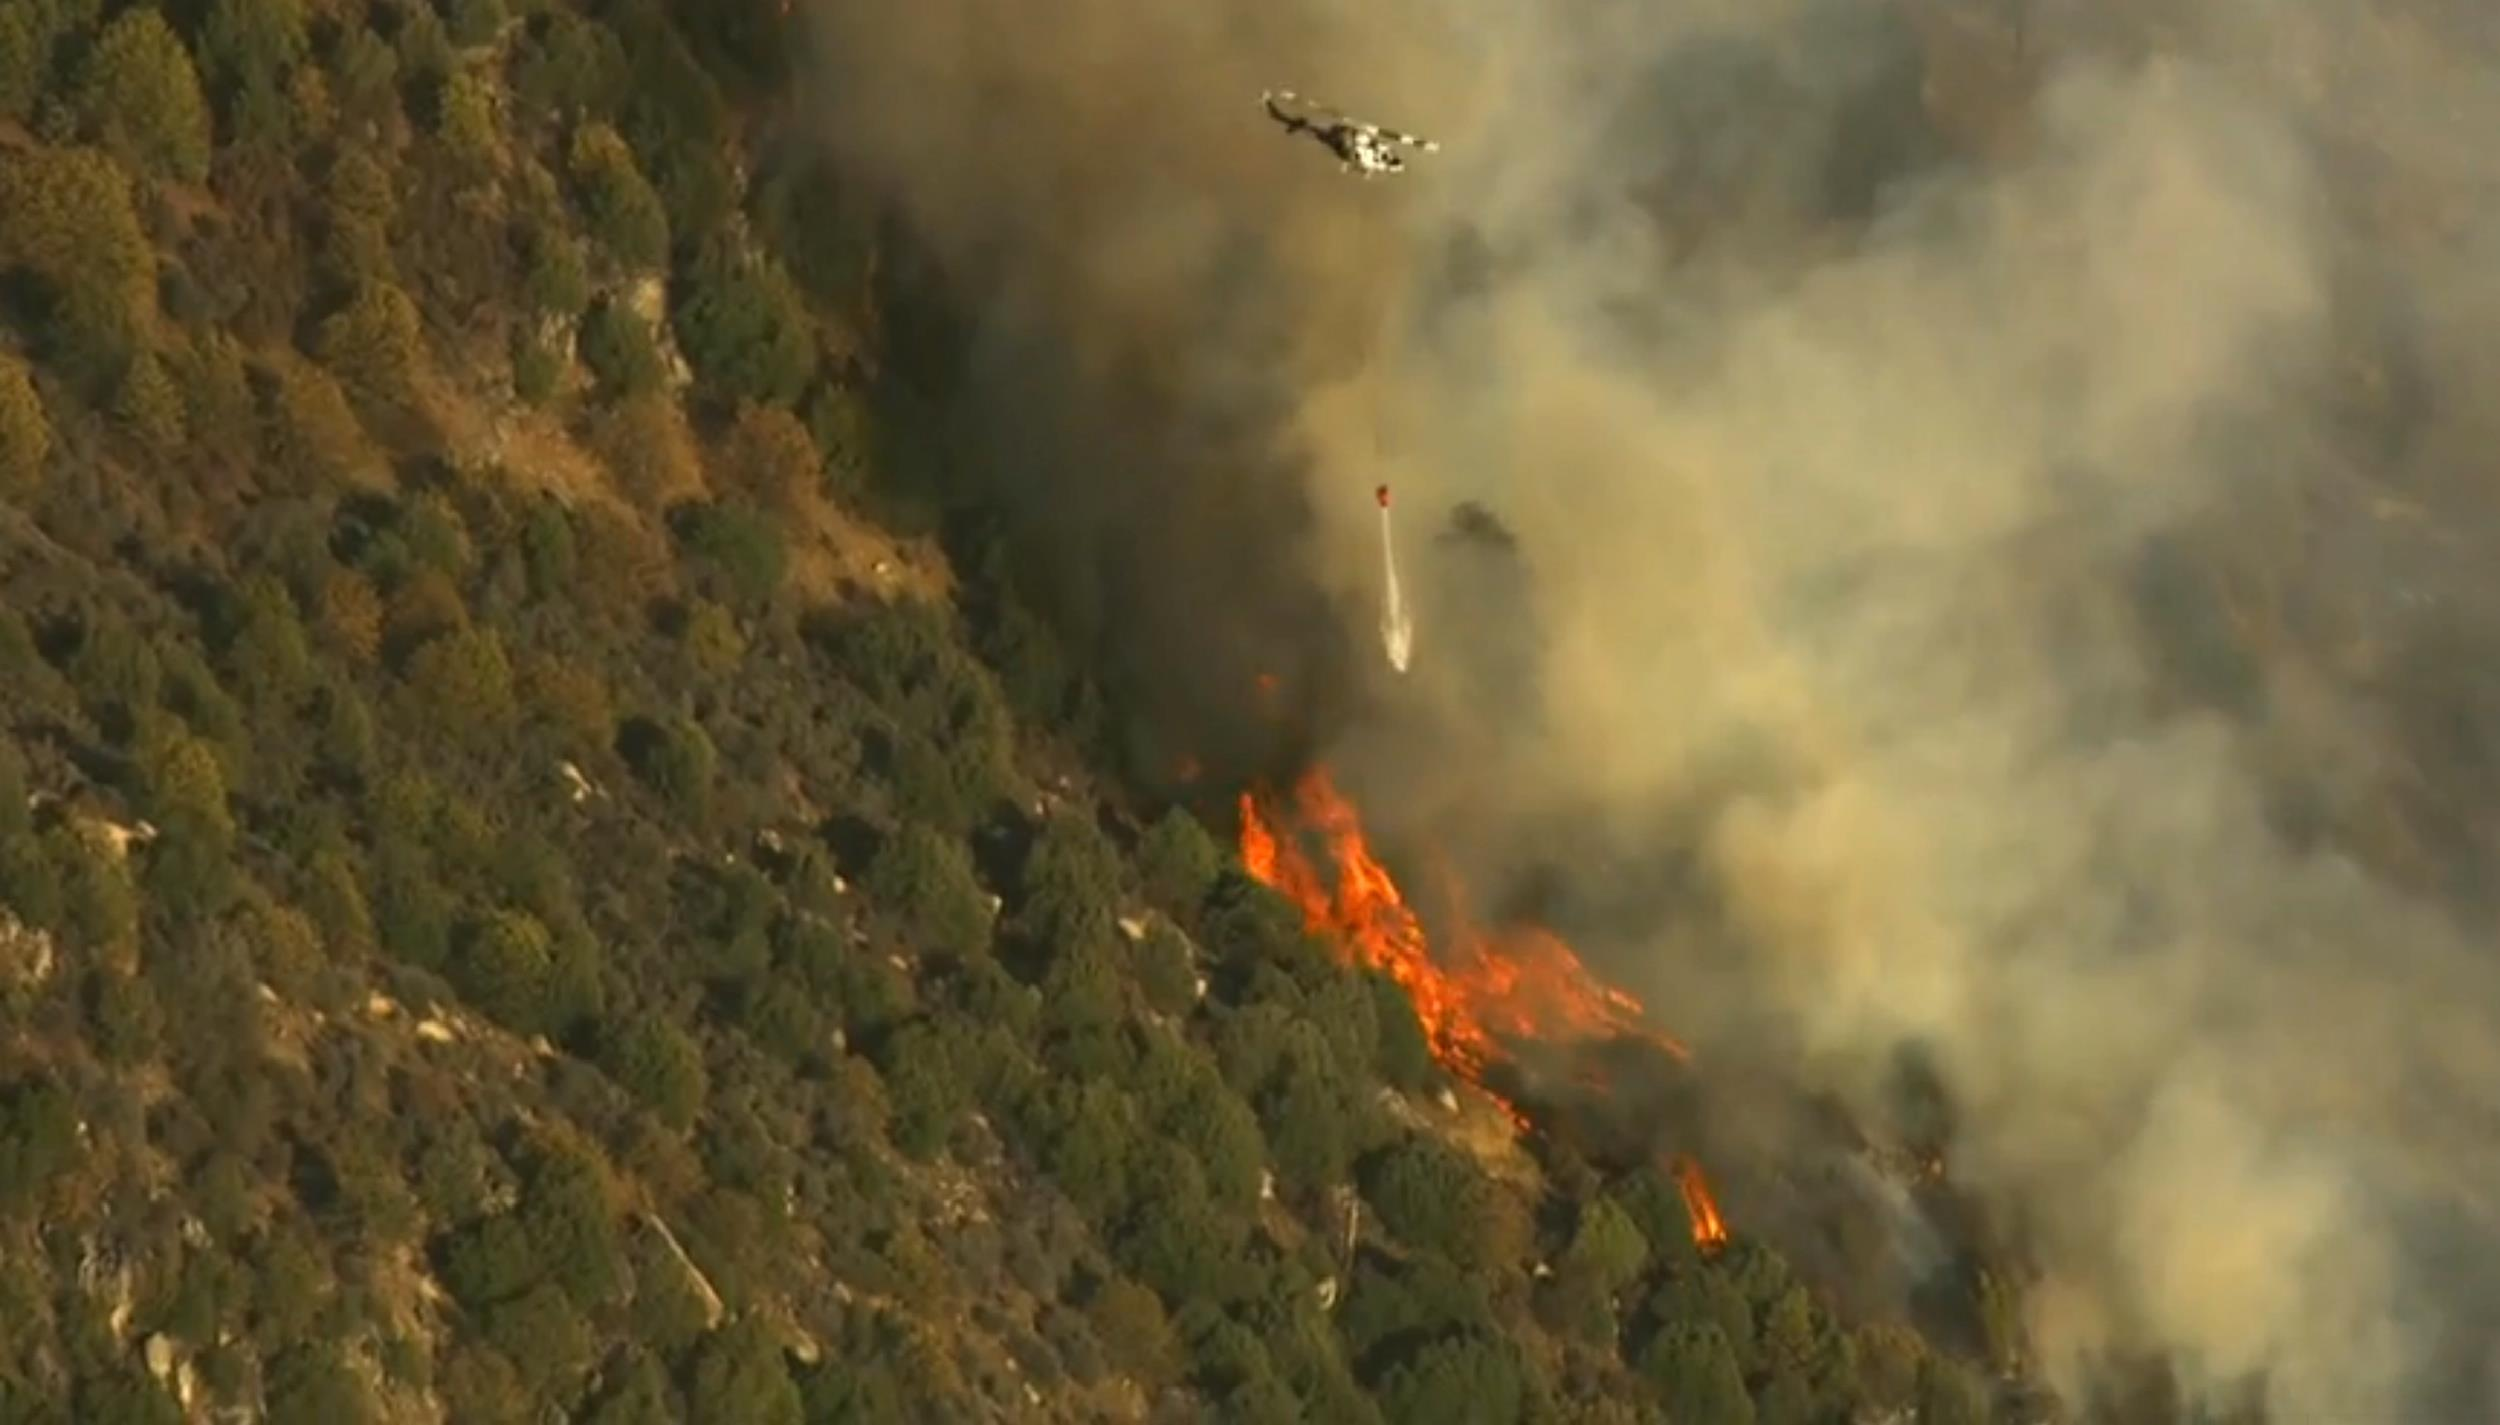 Dog Rock Fire Wildfire In Yosemite Rages Uncontained  Nbc